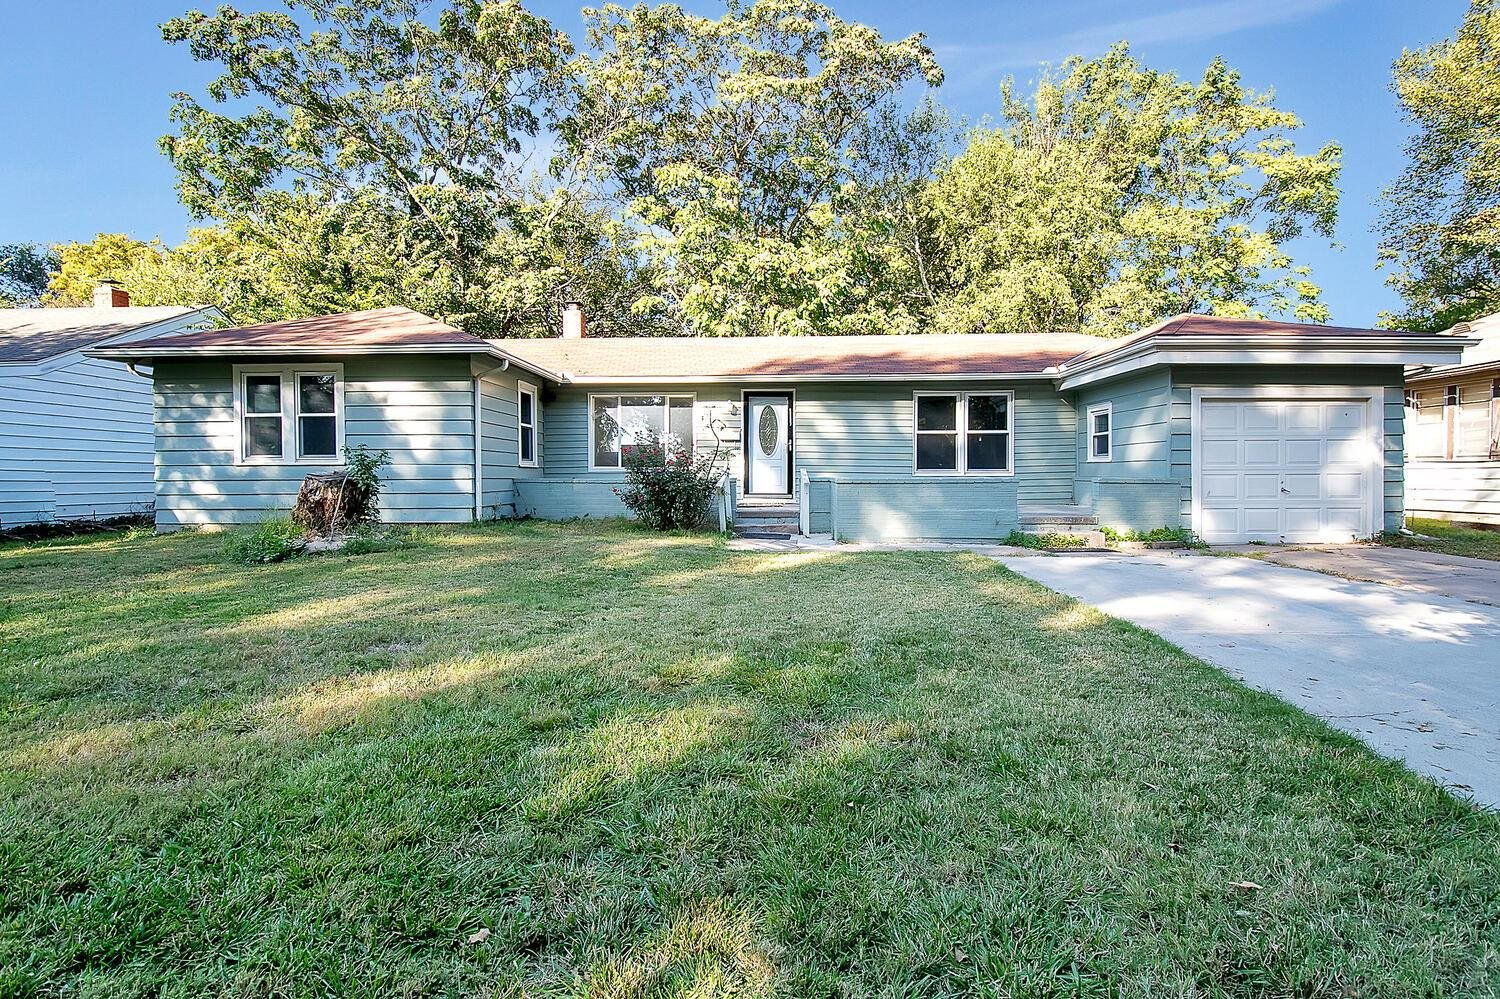 Charming Four bedroom, two bath updated and clean home in a quiet neighborhood. Large fenced back yard with a storage shed and lots of shade.  Home is being sold as-is, the seller never lived in the home.  All appliances in the home stay with the home!